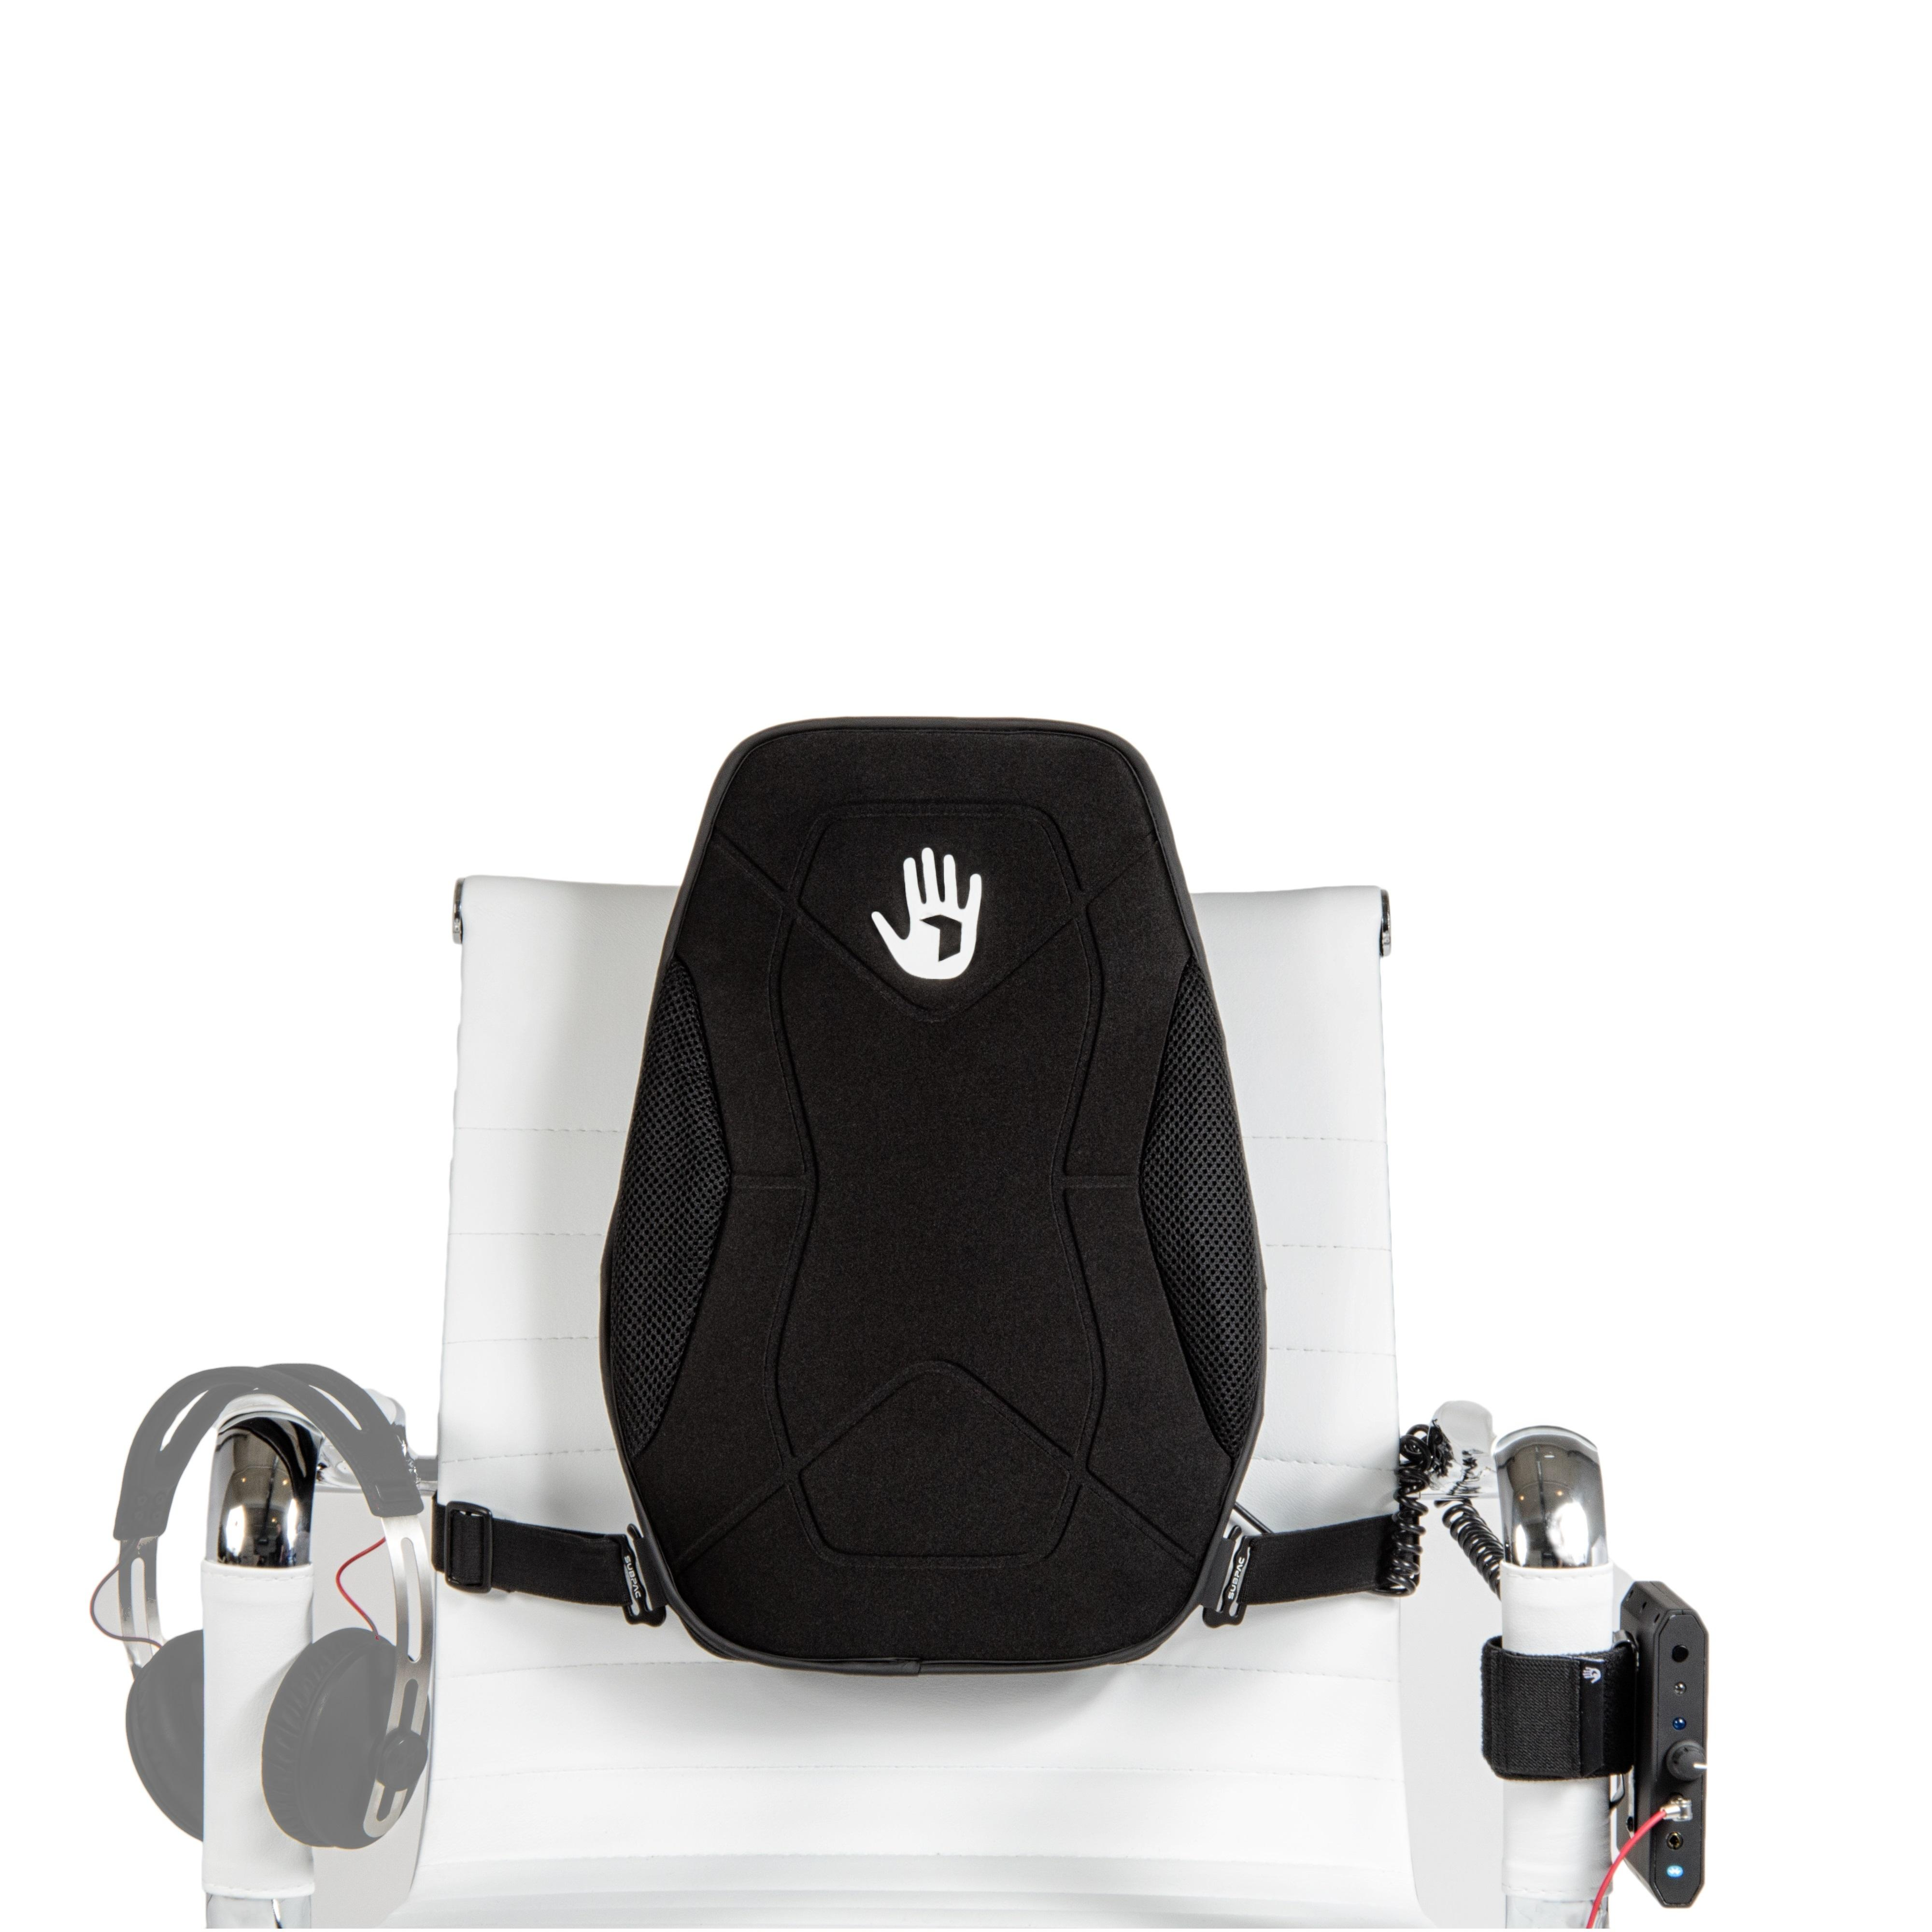 Amazon.com: SubPac S2 Seatback Physical Sound System ...